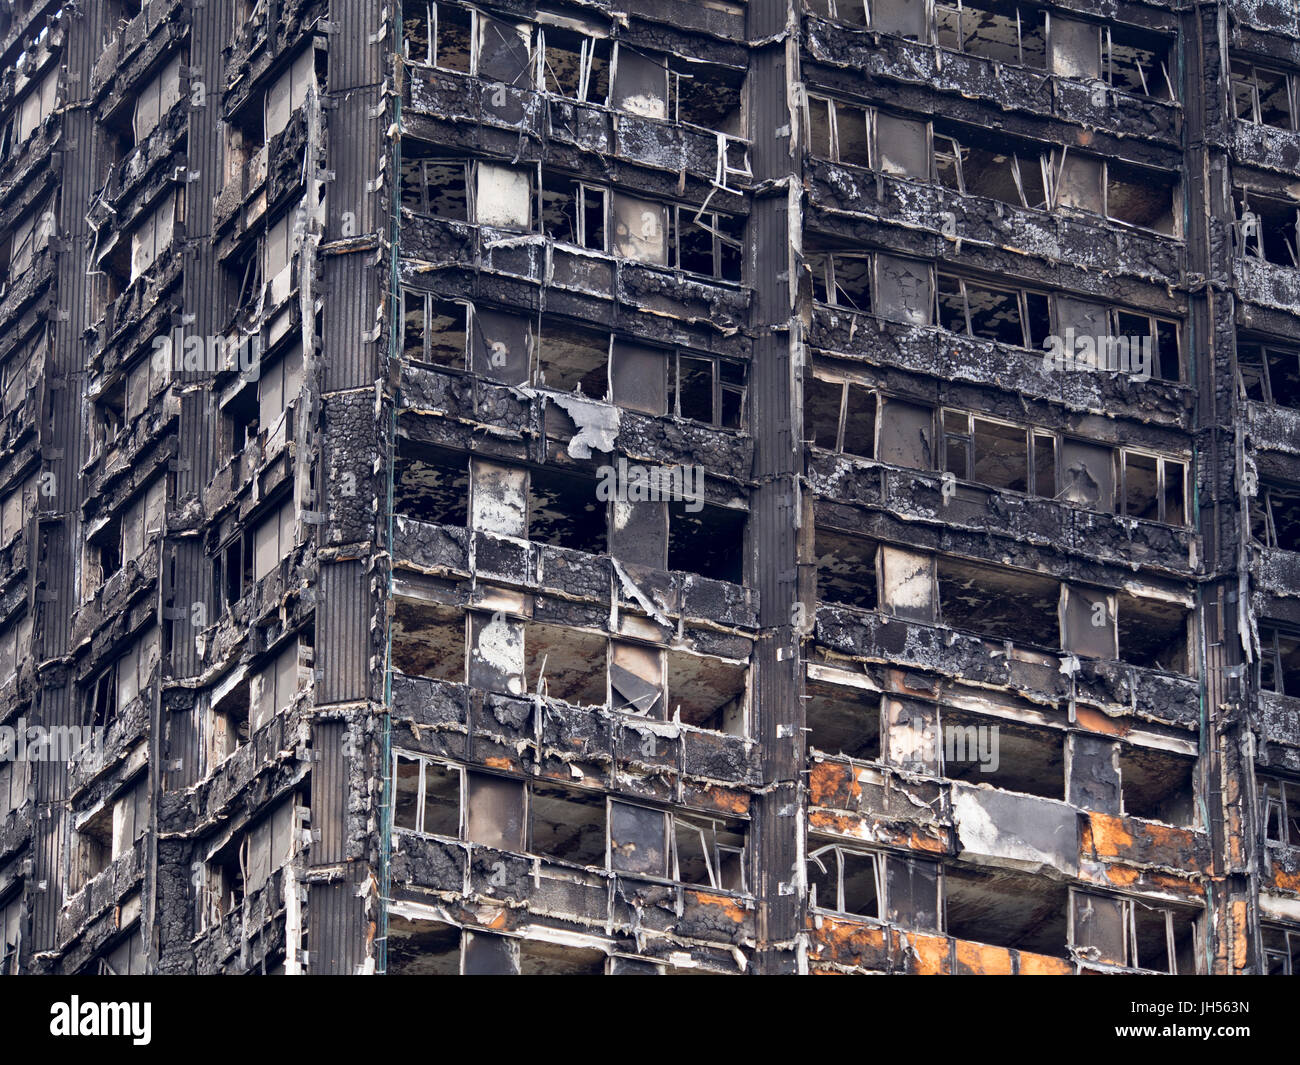 London, UK - Jul 4, 2017: Close up view of the Grenfell Tower block in which at least 80 people are thought to have - Stock Image